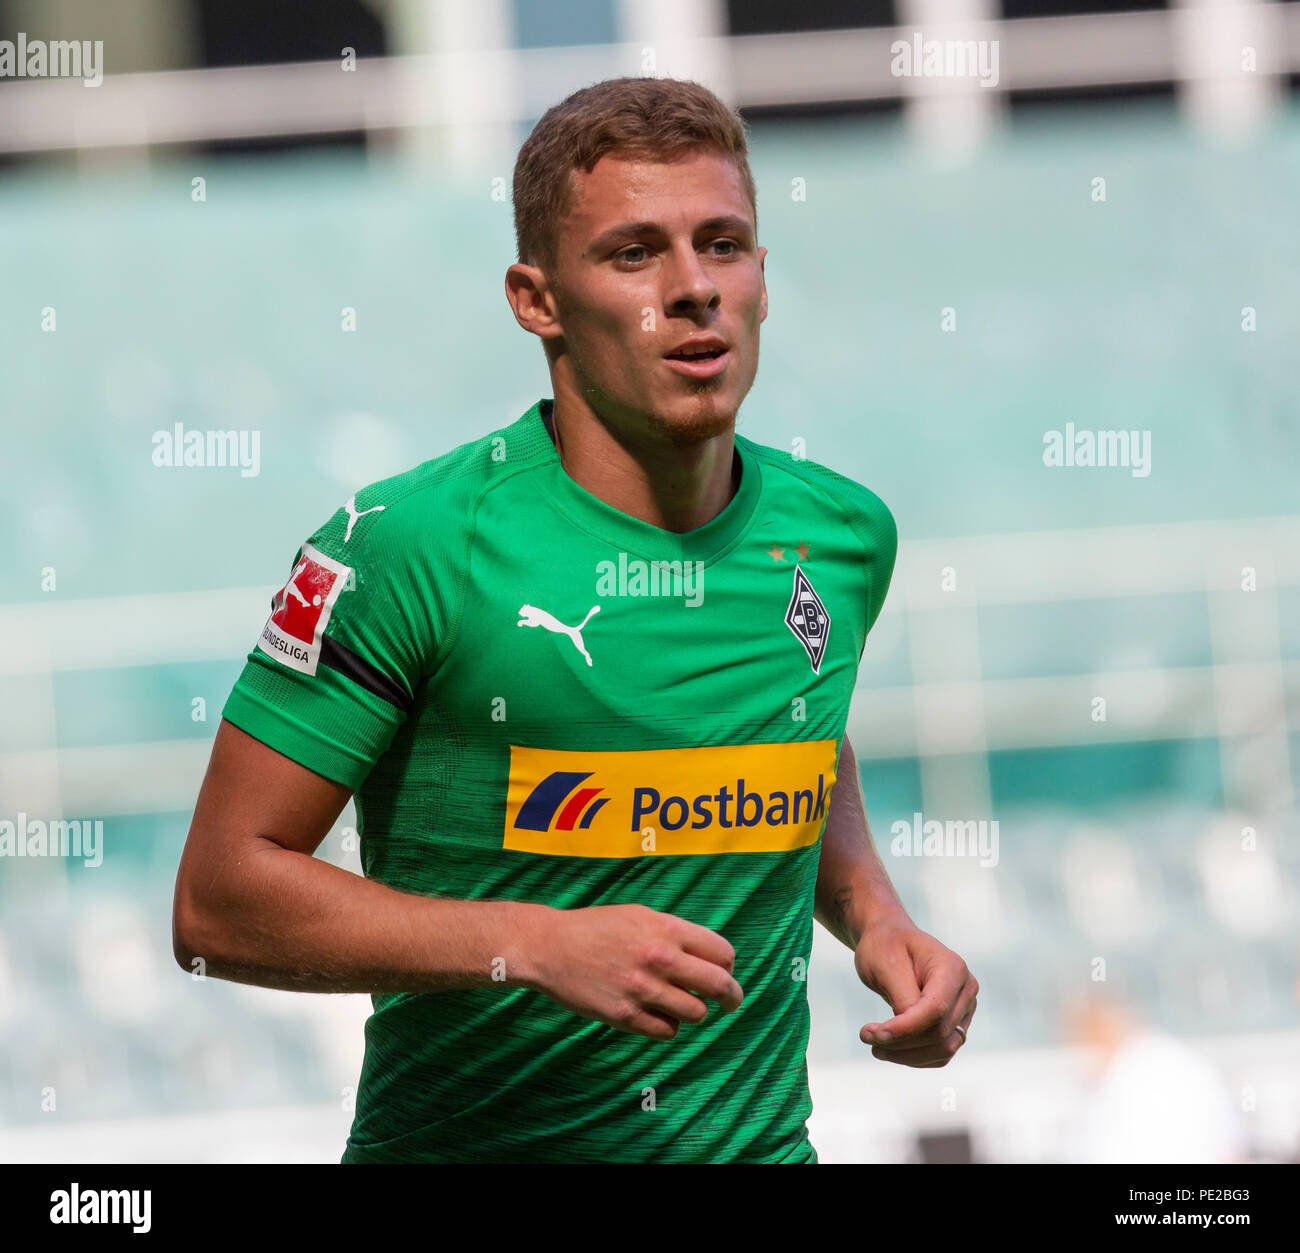 Moenchengladbach, Germany August 12 2018, friendly match, Borussia Moenchengladbach vs FC Wegberg-Beeck: Thorgan Hazard (BMG) schaut.                Credit: Juergen Schwarz/Alamy Live News - Stock Image